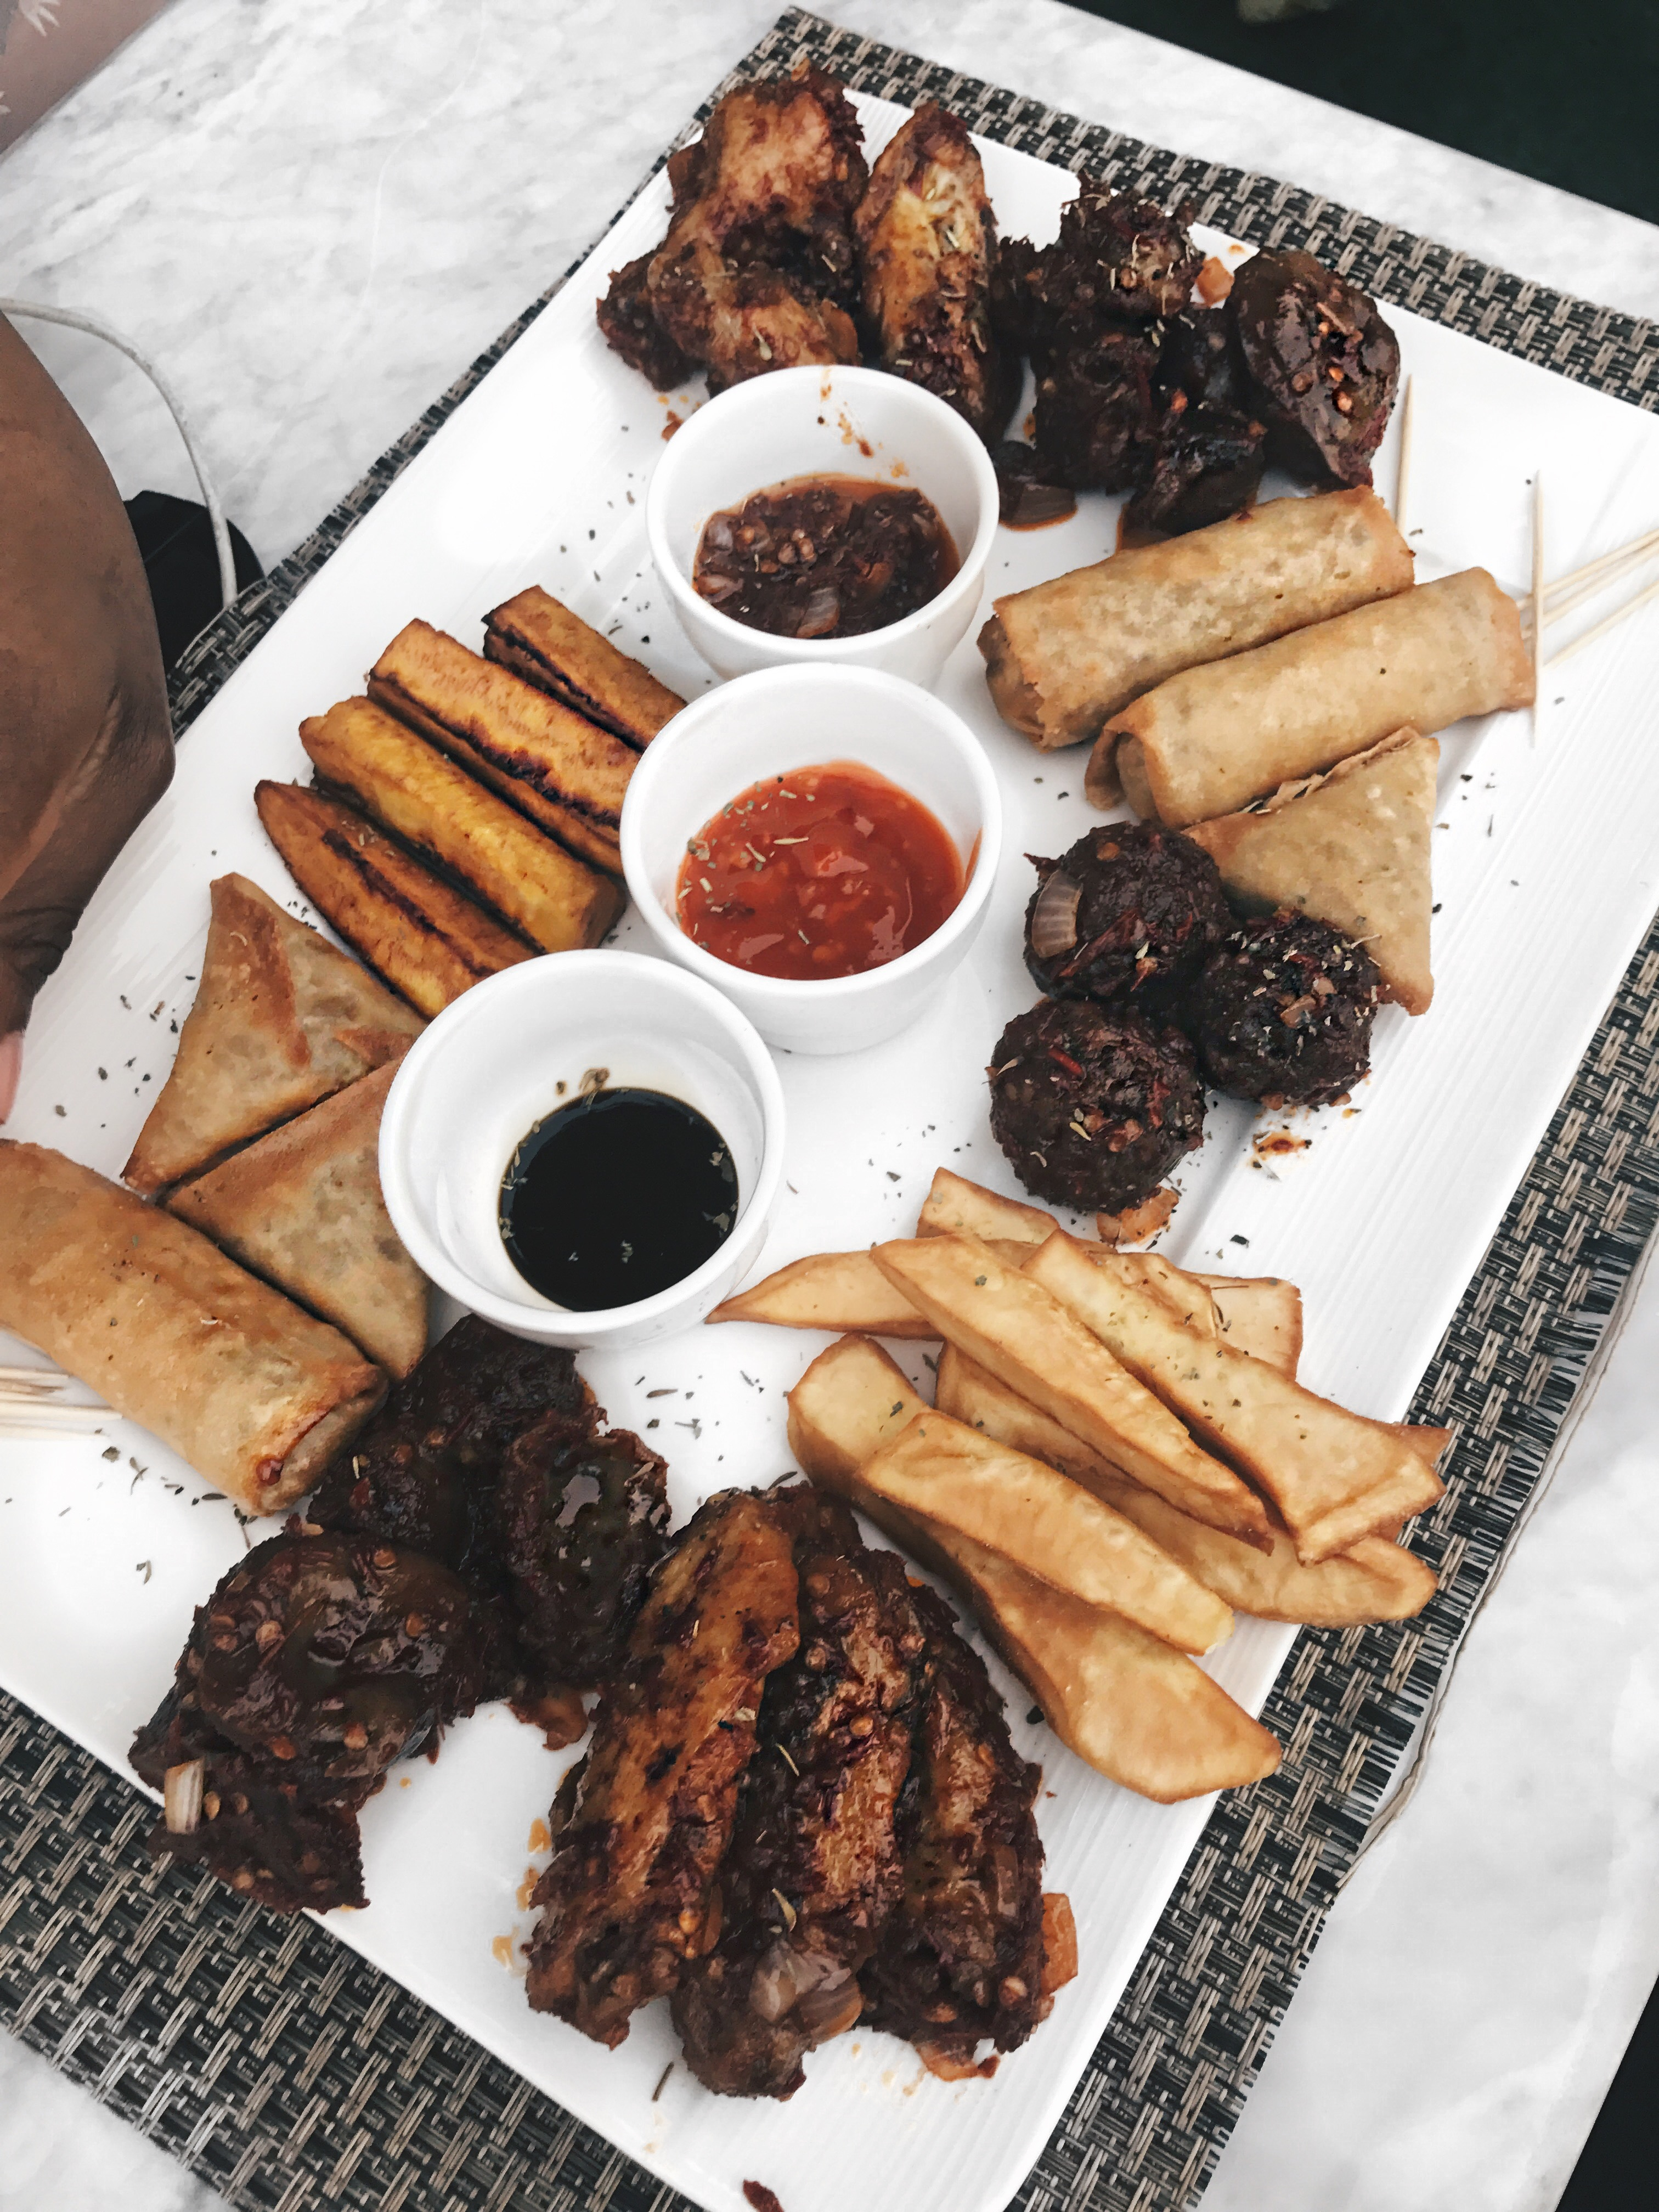 Yum: The Bridge, Lagos